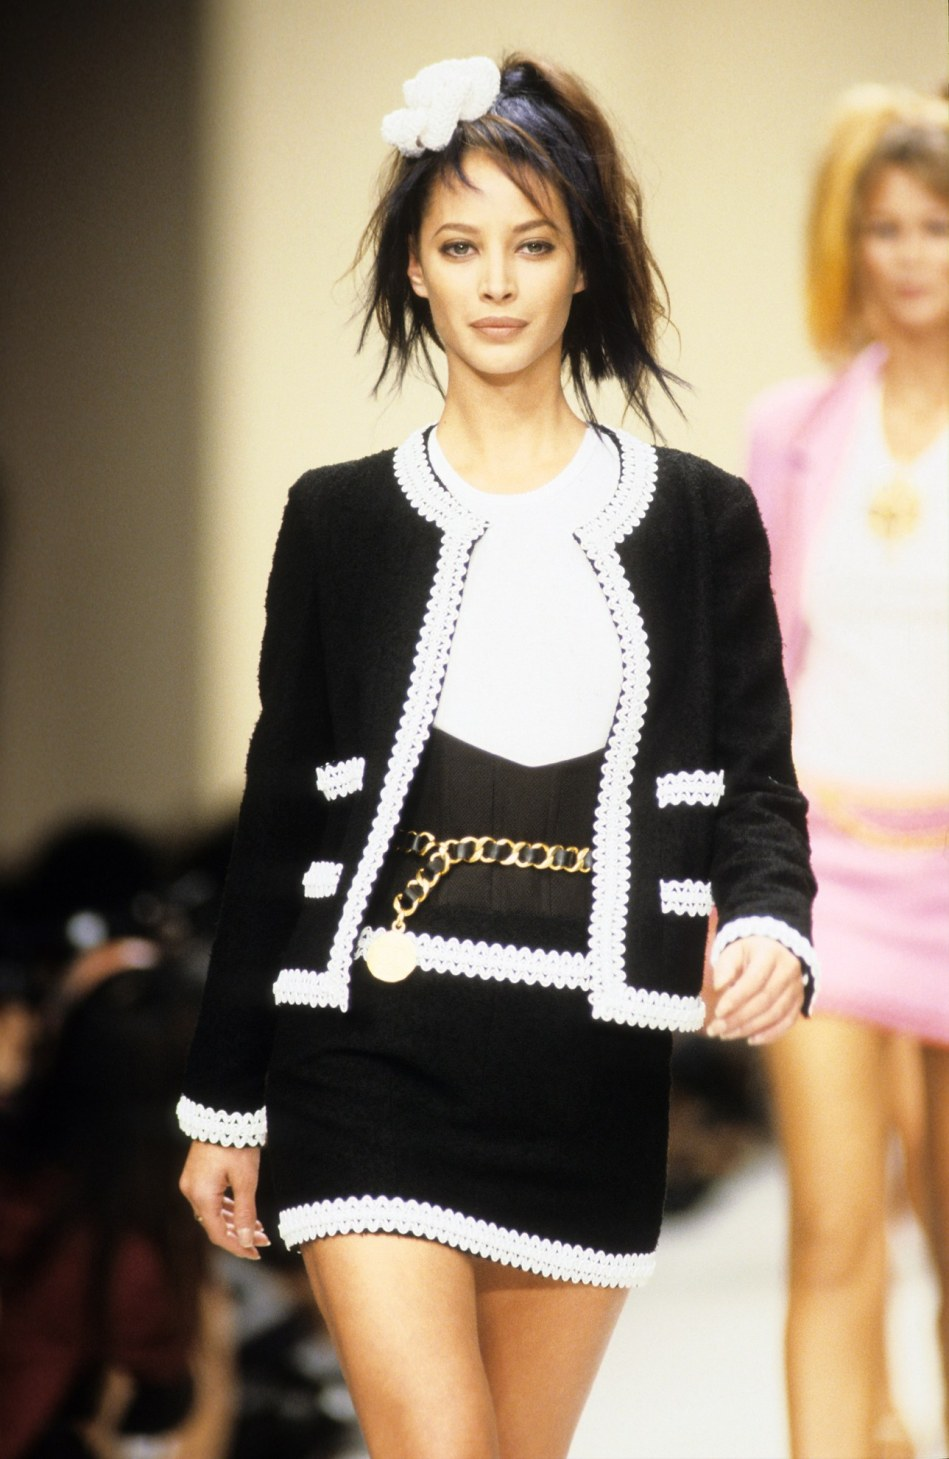 chanel-spring-1994-rtw-02-christy-turlington